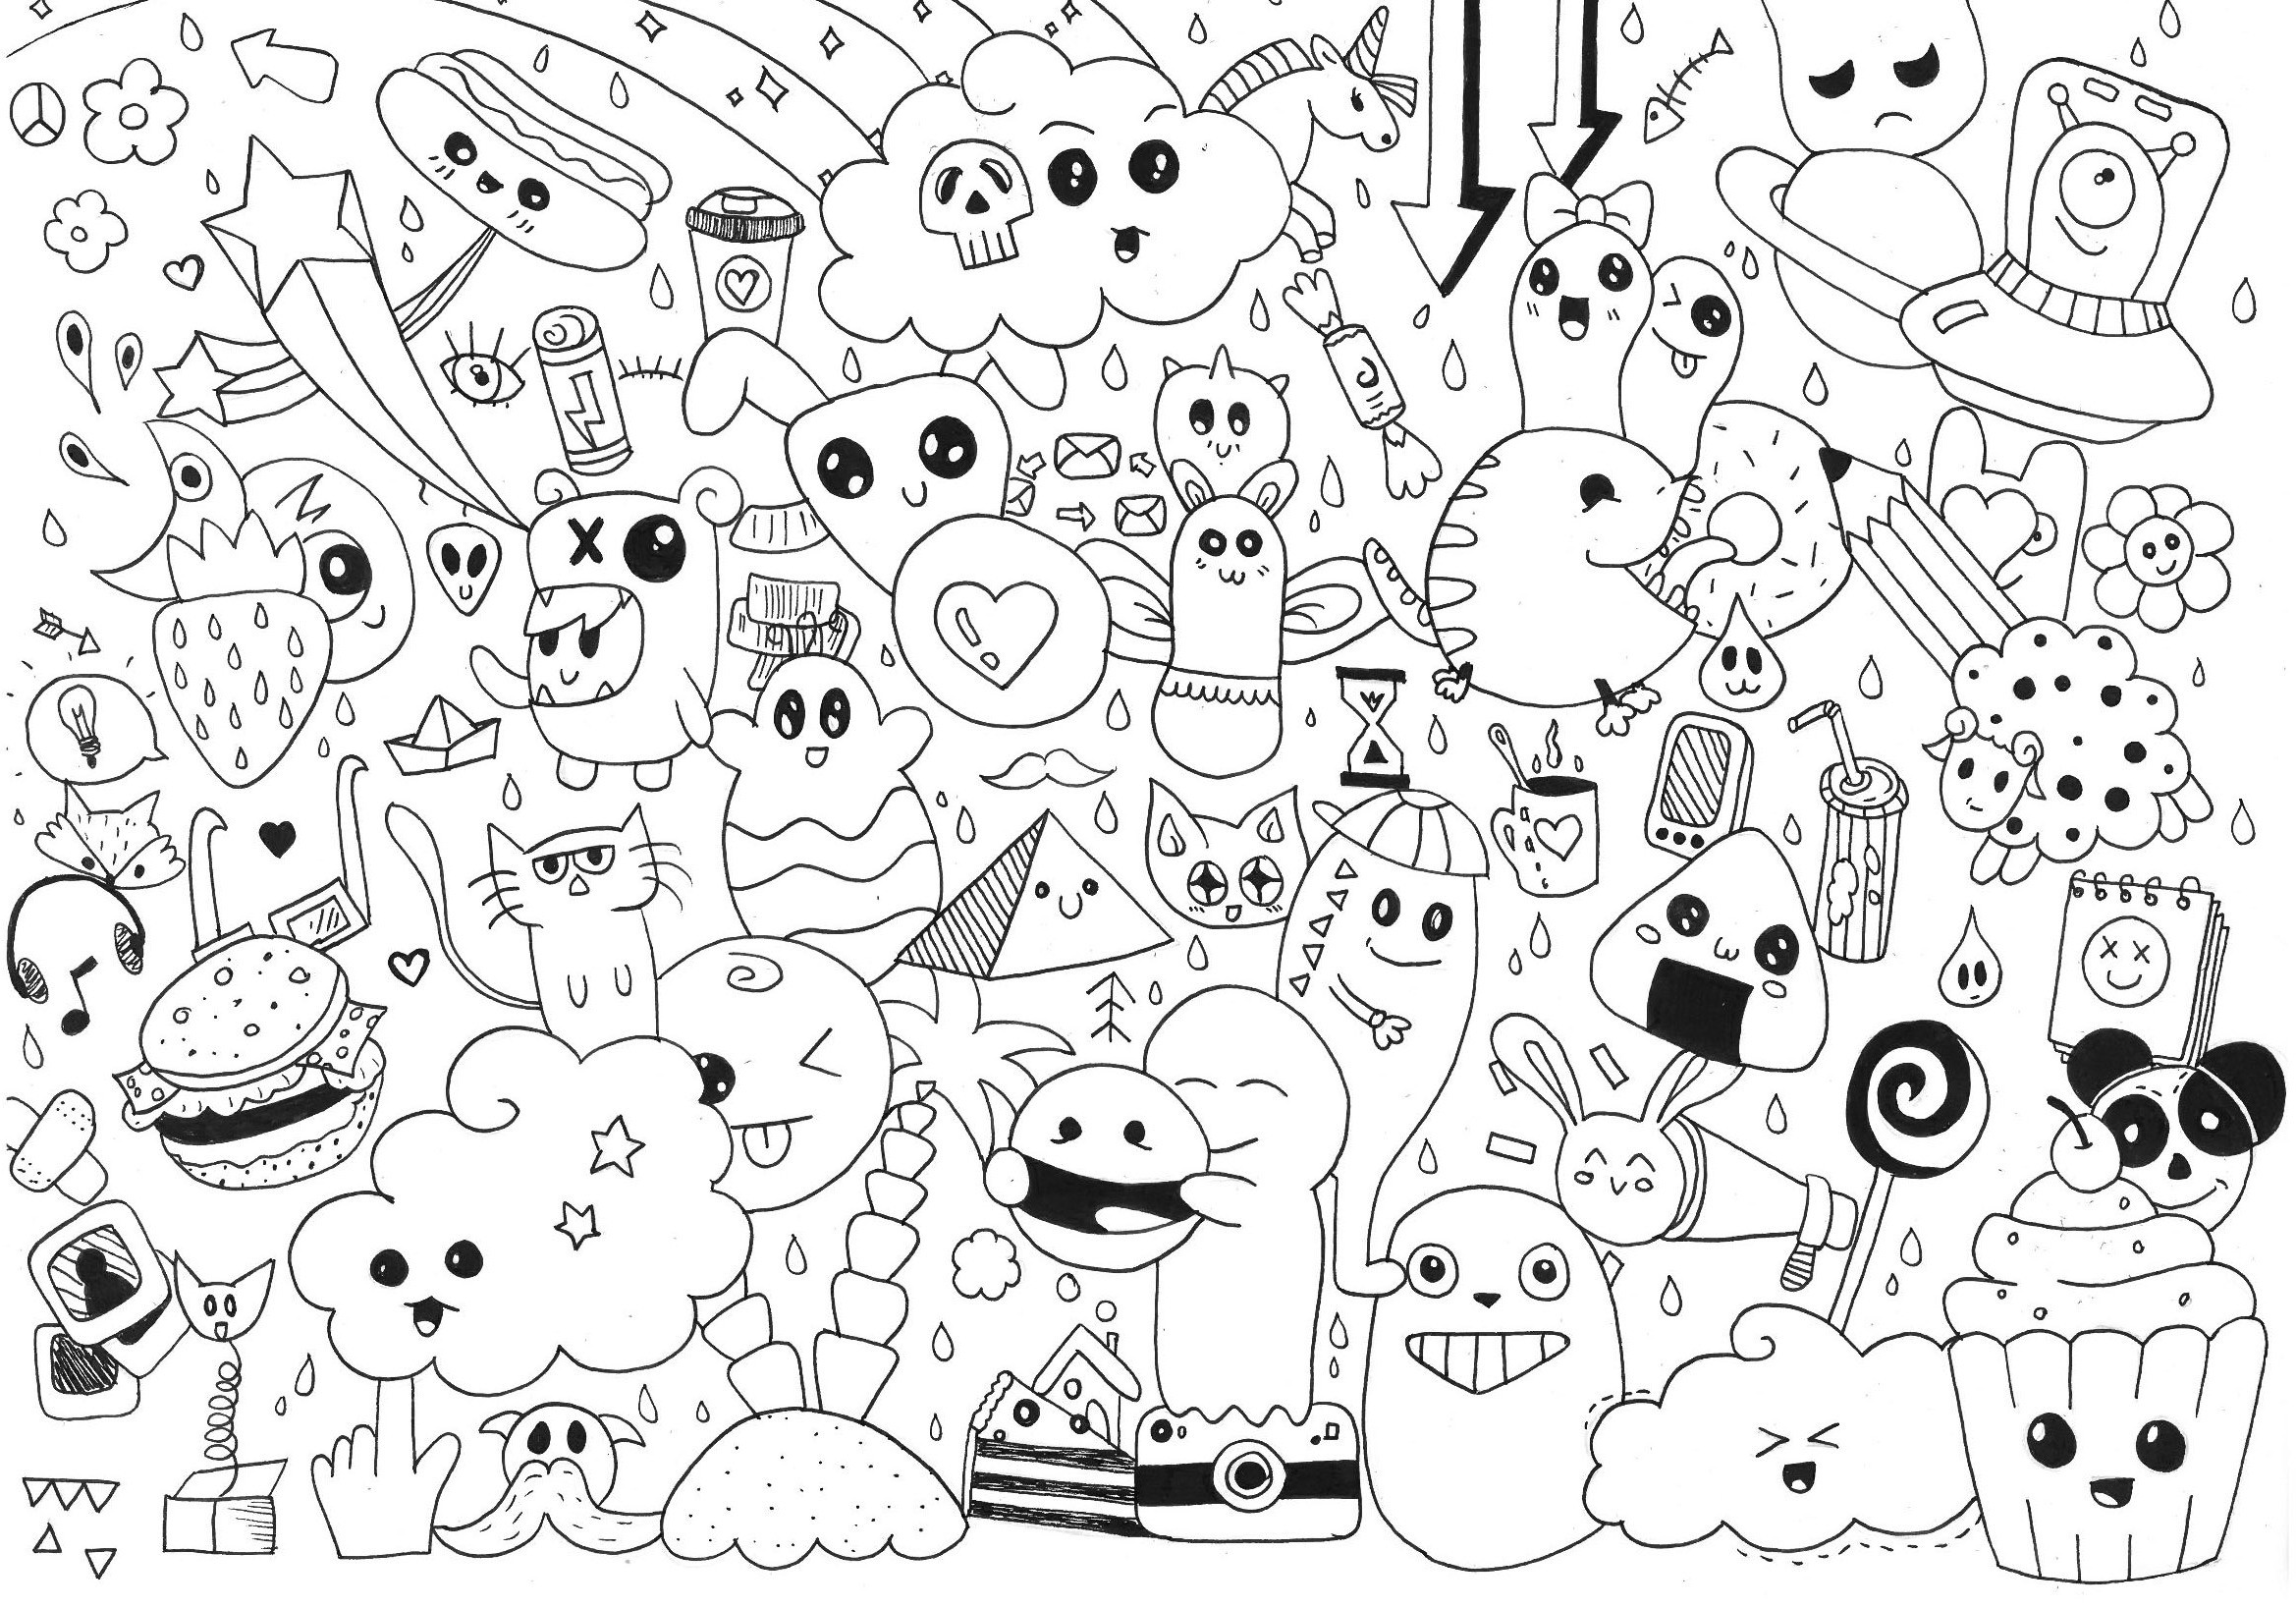 Coloring Ideas : Coloring Page Amazing Doodle Art Pages Gaming - Free Printable Doodle Art Coloring Pages